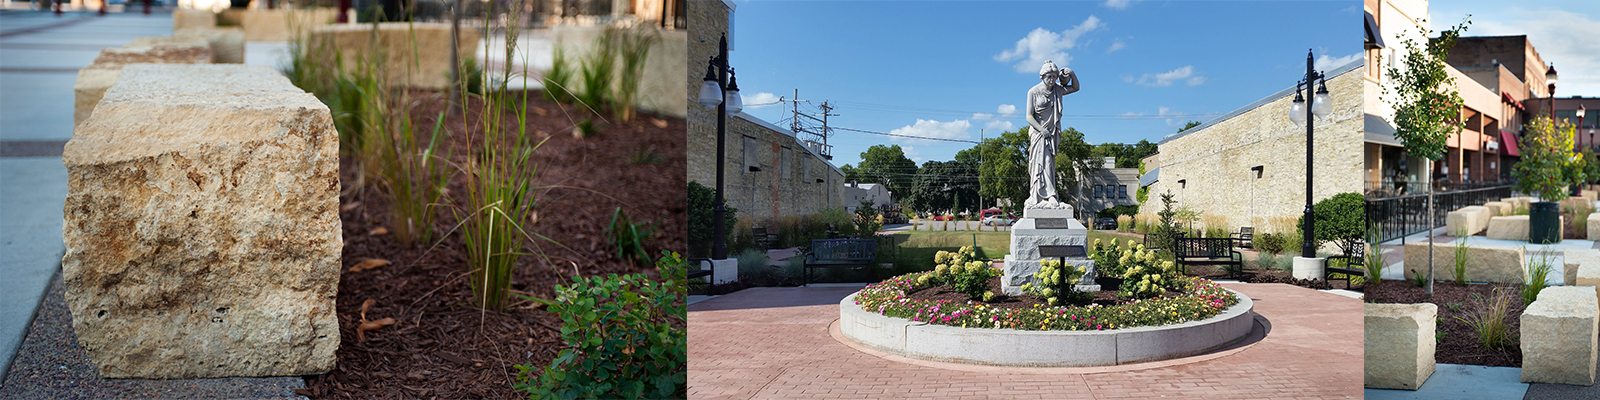 landscaping and placemaking in downtown communities